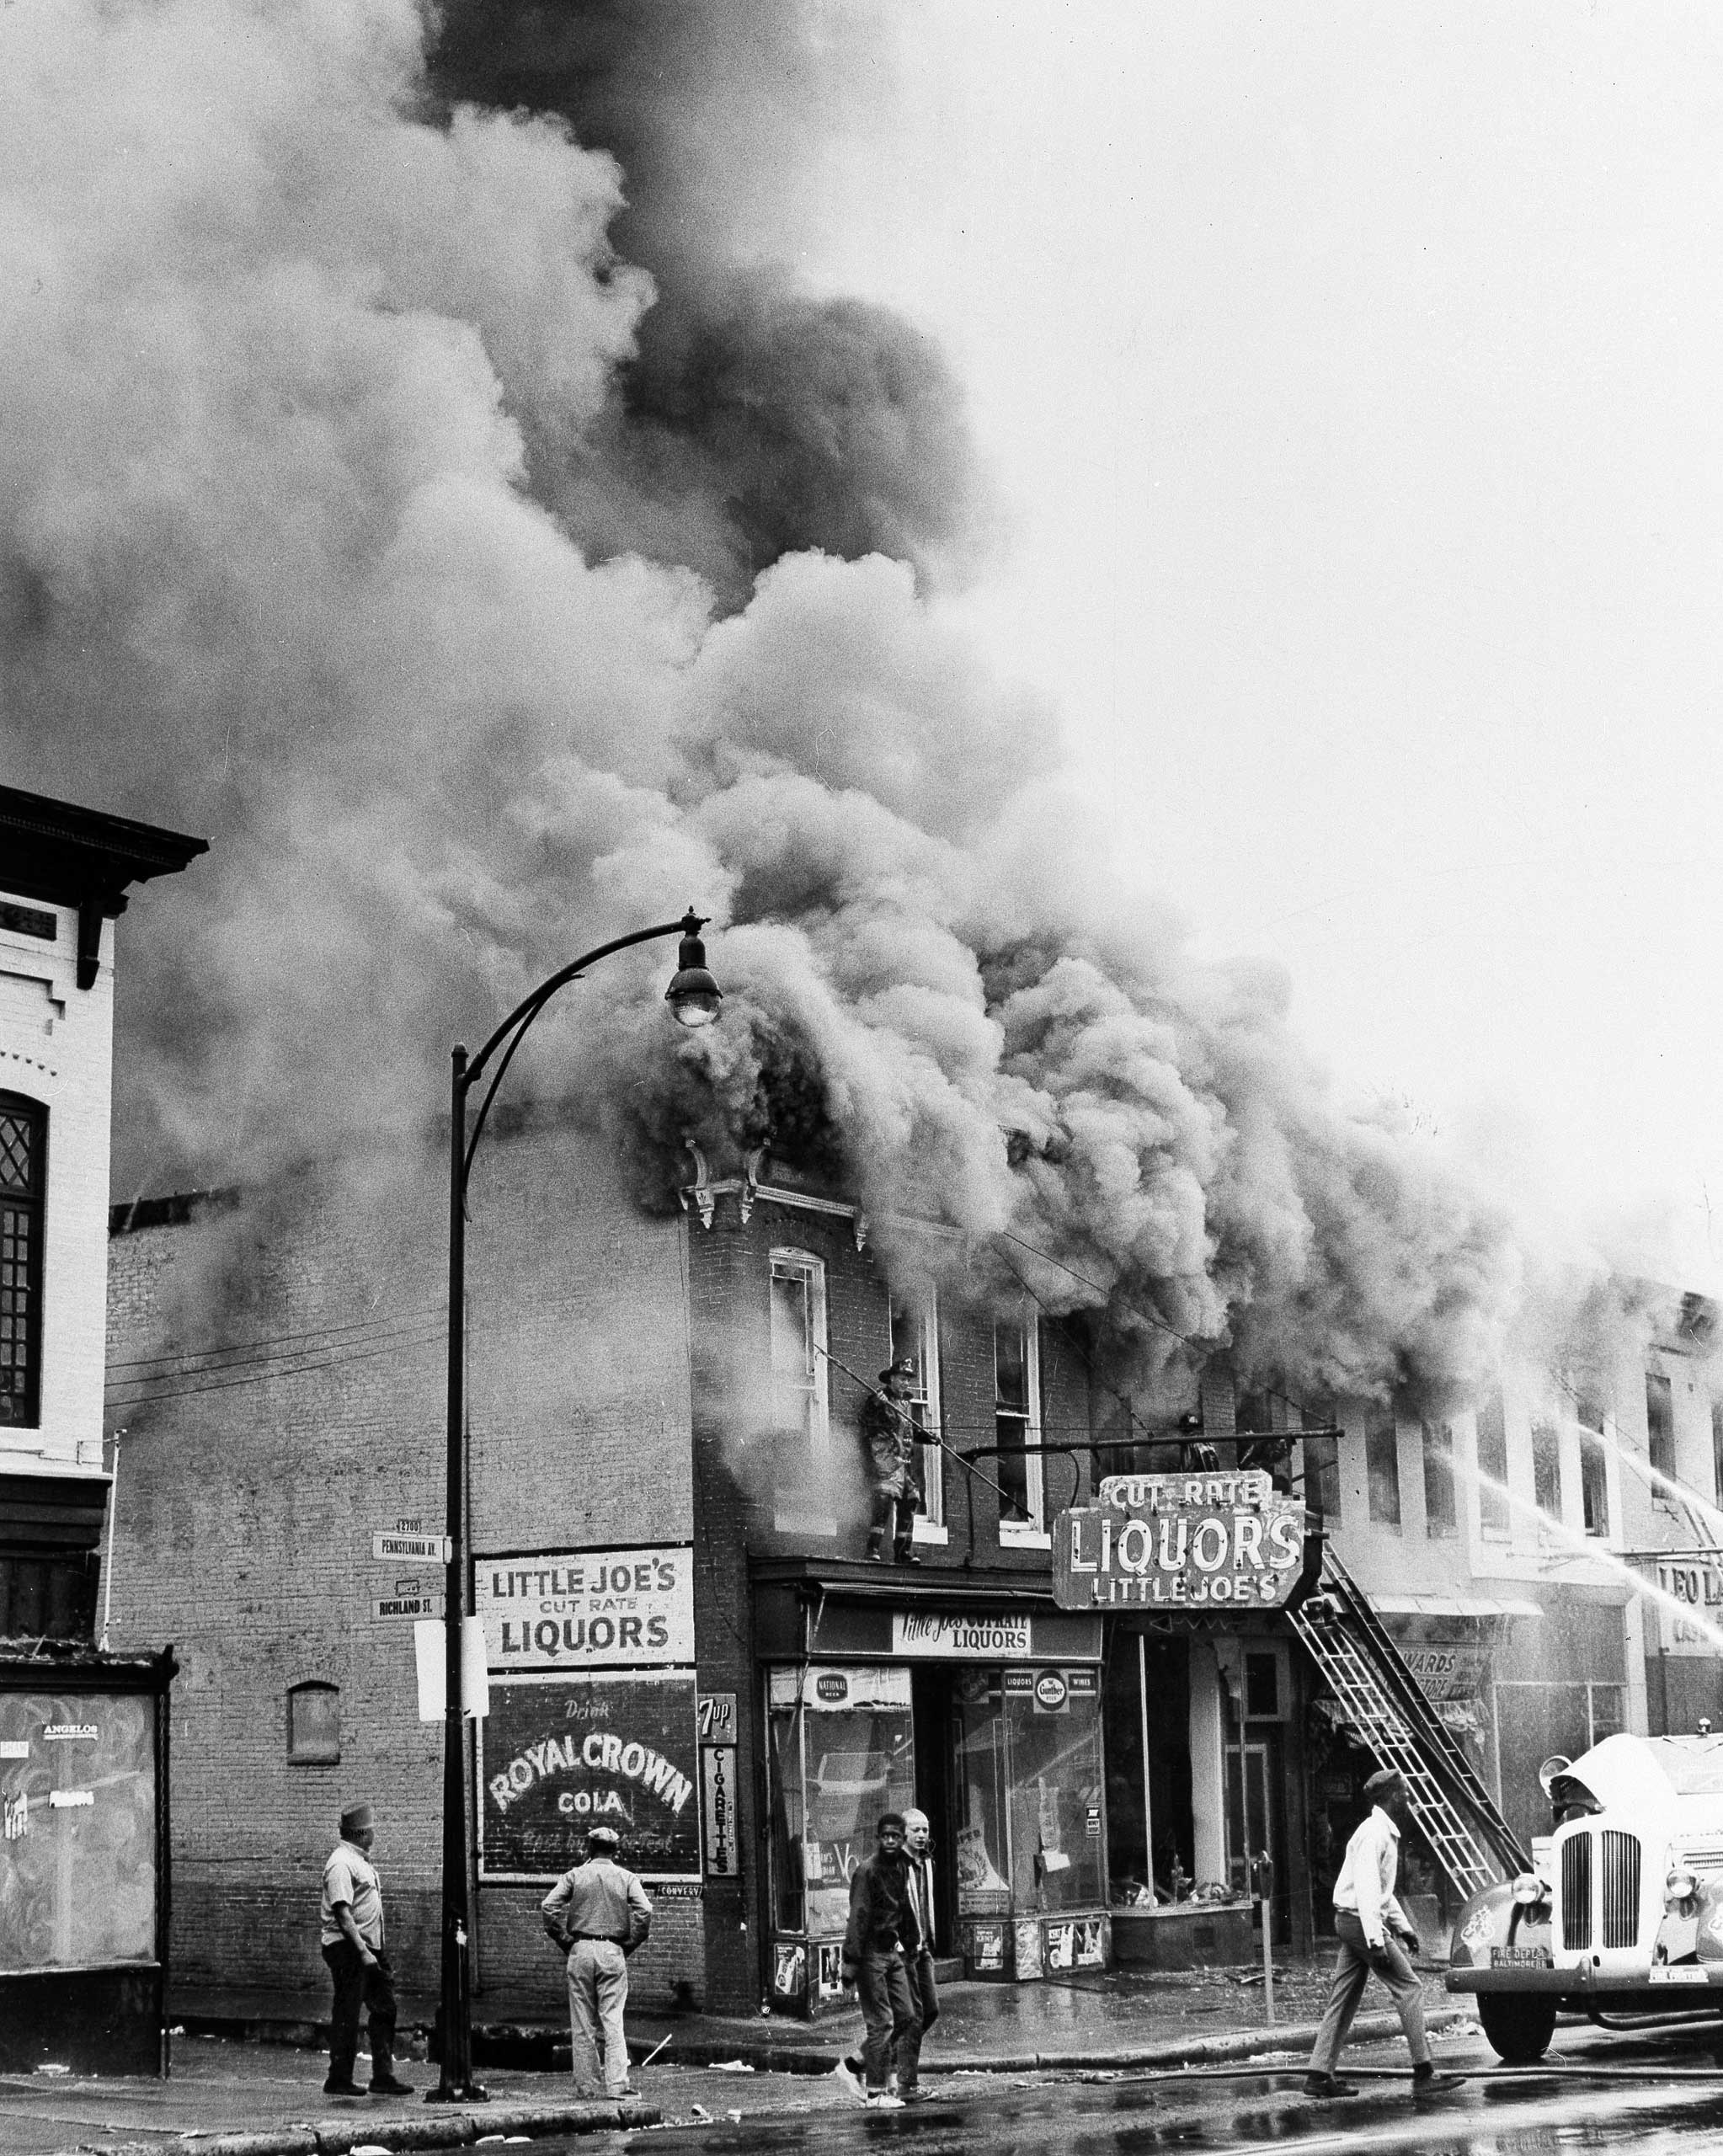 Smoke billows from a liquor store which was looted during the third day of violence, which saw over 400 fires, in Baltimore on April 8, 1968.